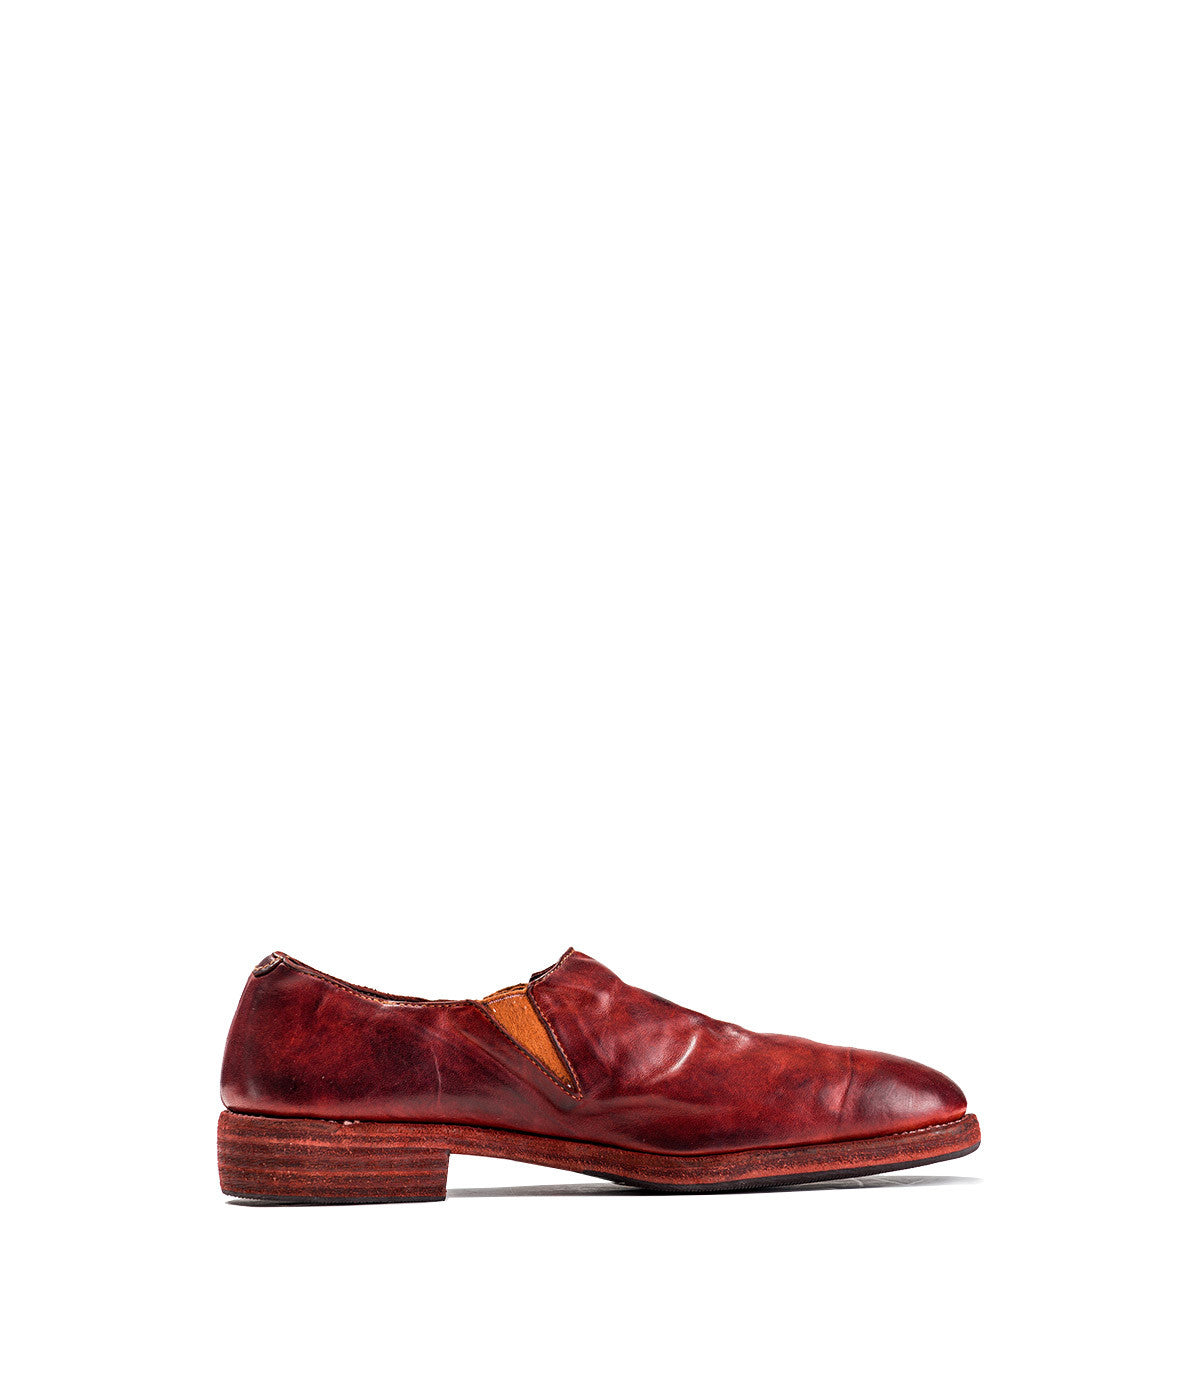 Red Almond Toe Oxford Slip-On Shoe